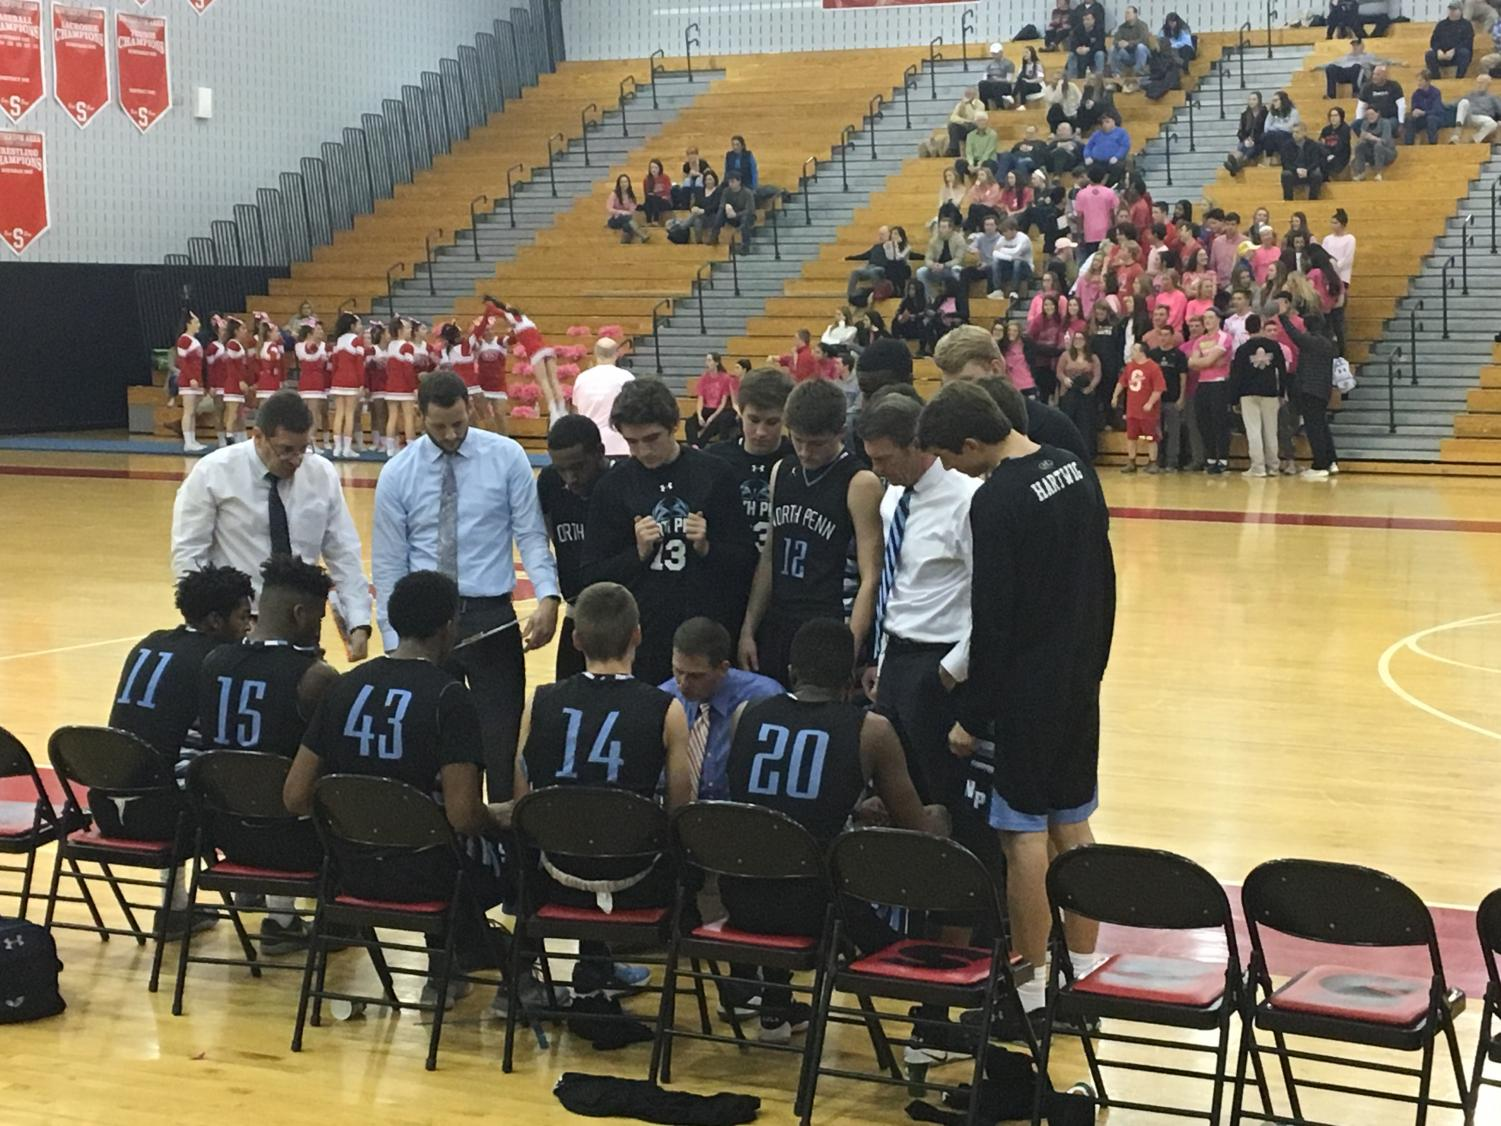 BASKETBALL- The North Penn Knights held onto an early lead against Souderton to clinch a win.